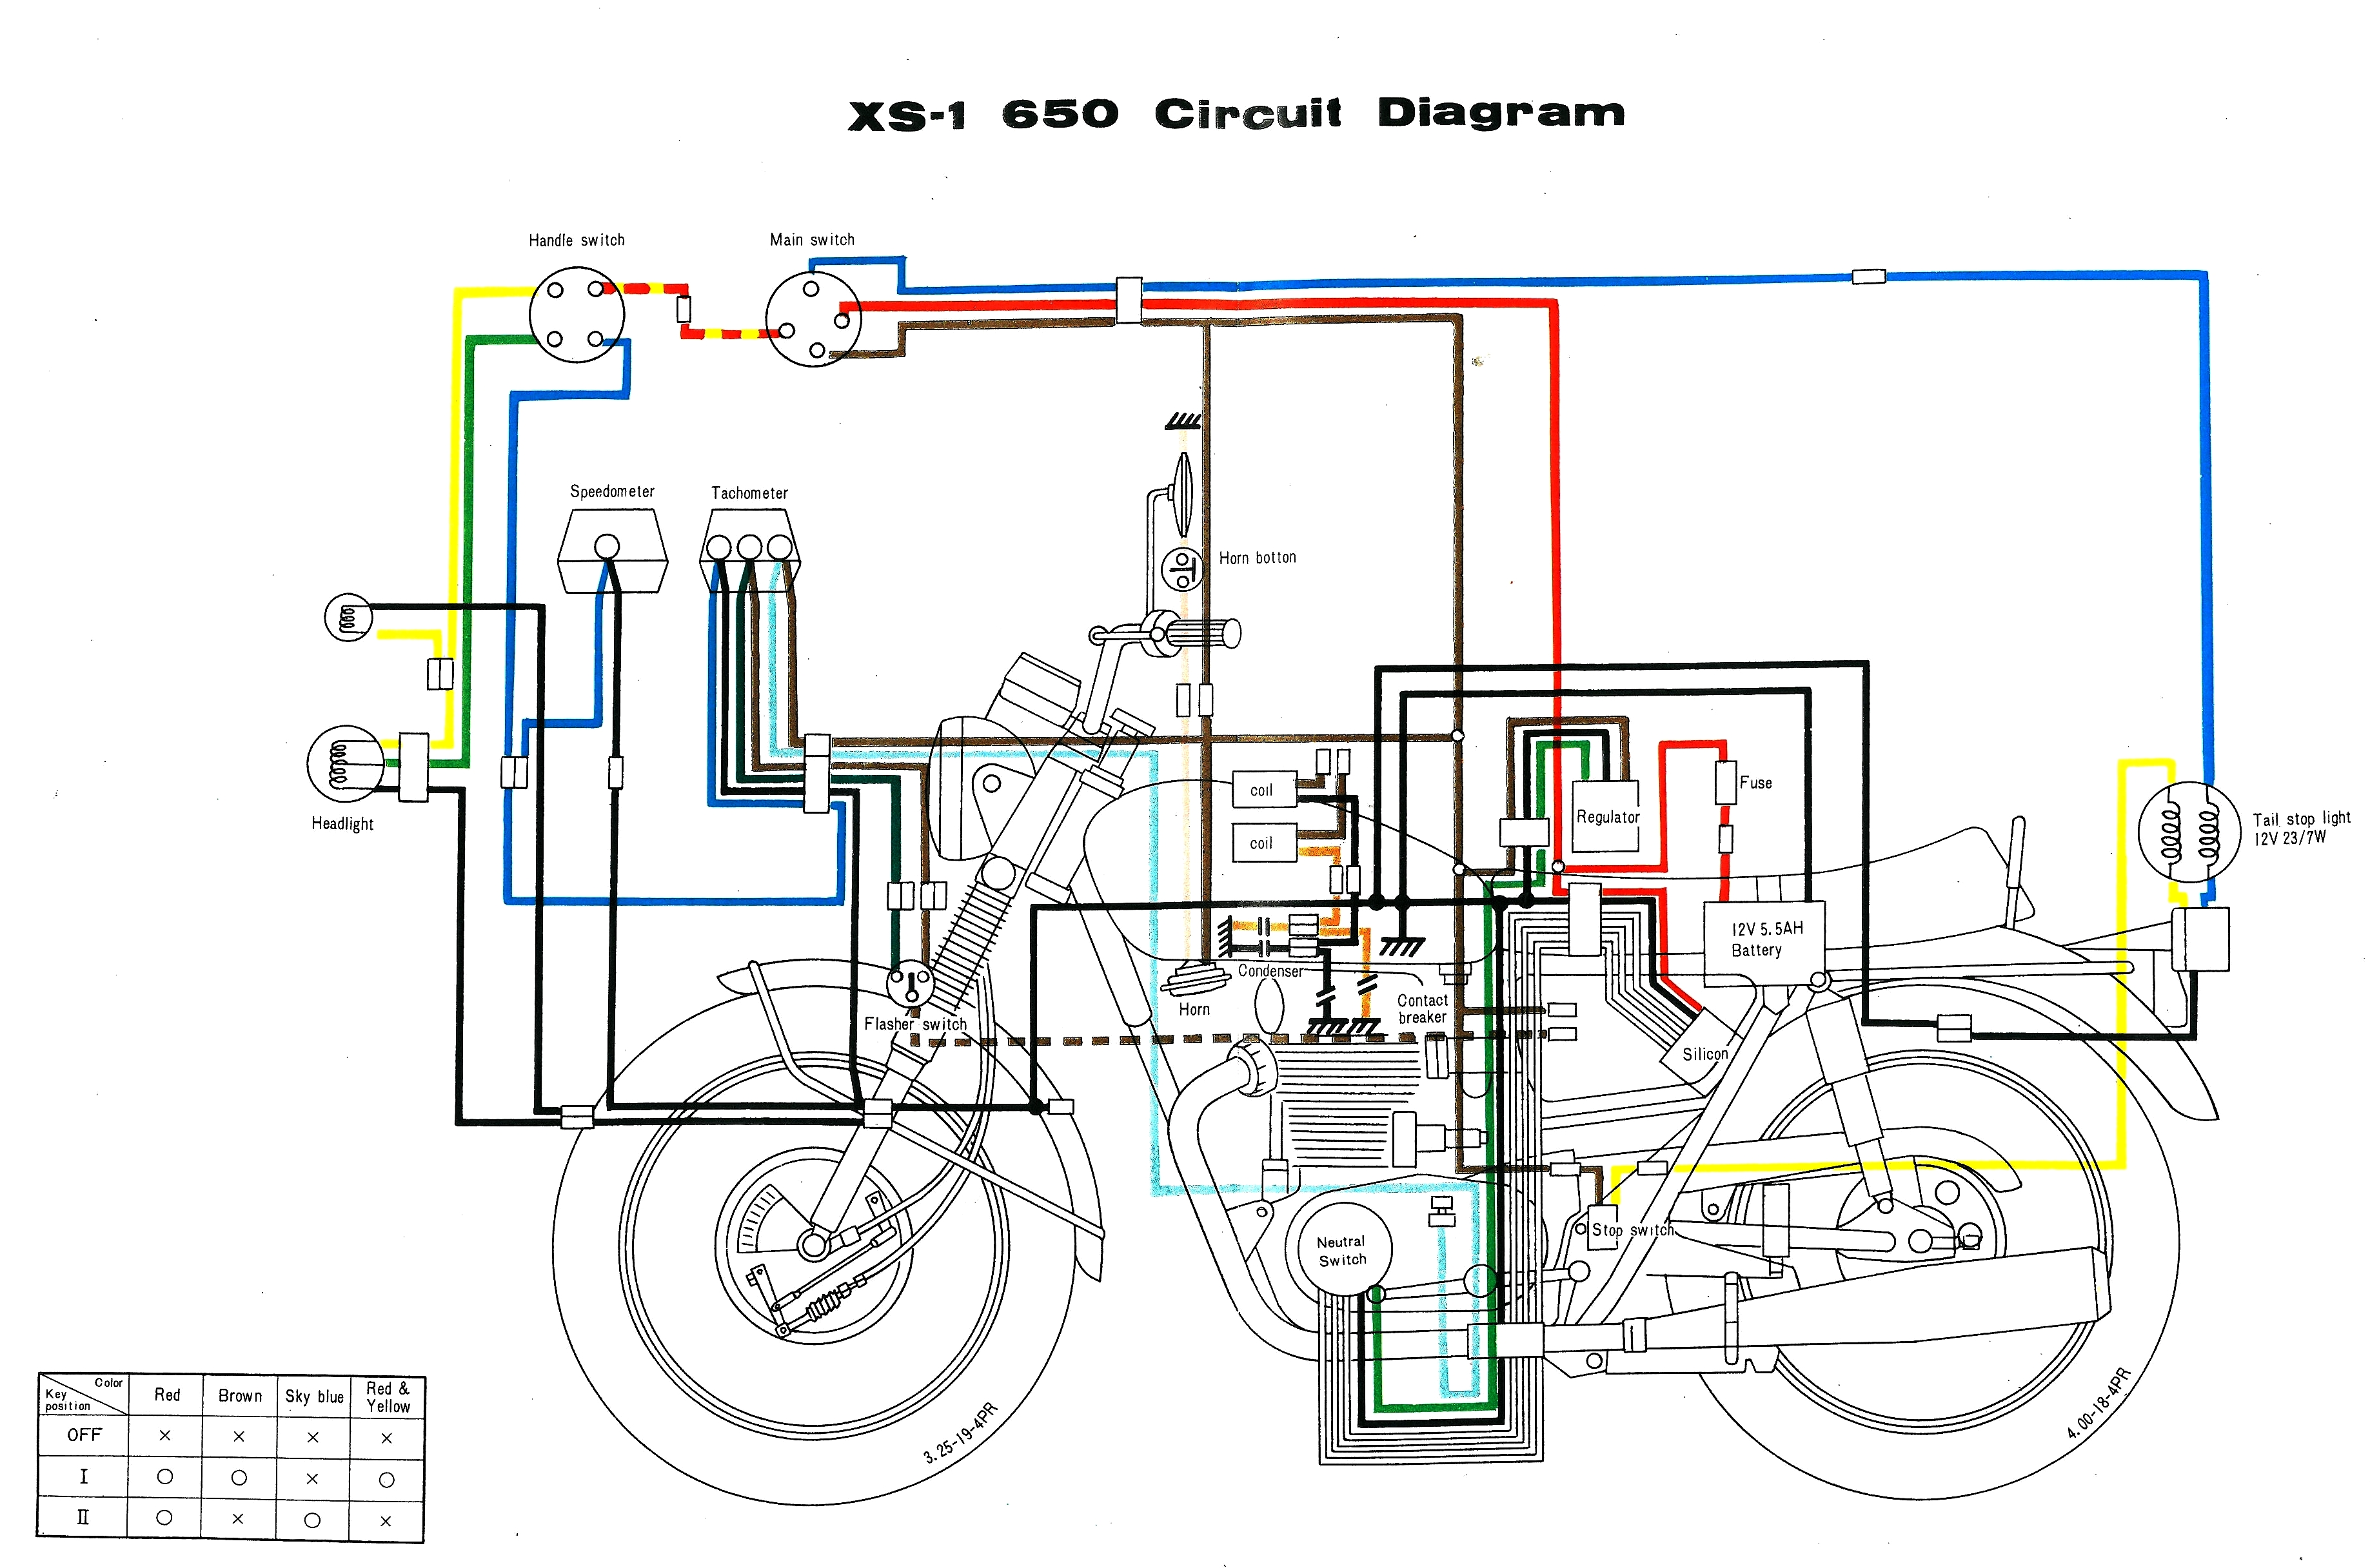 Yamaha Xj650 Maxim Wiring Diagram Trusted Diagrams Motorcycle On 1983 Xj550 1981